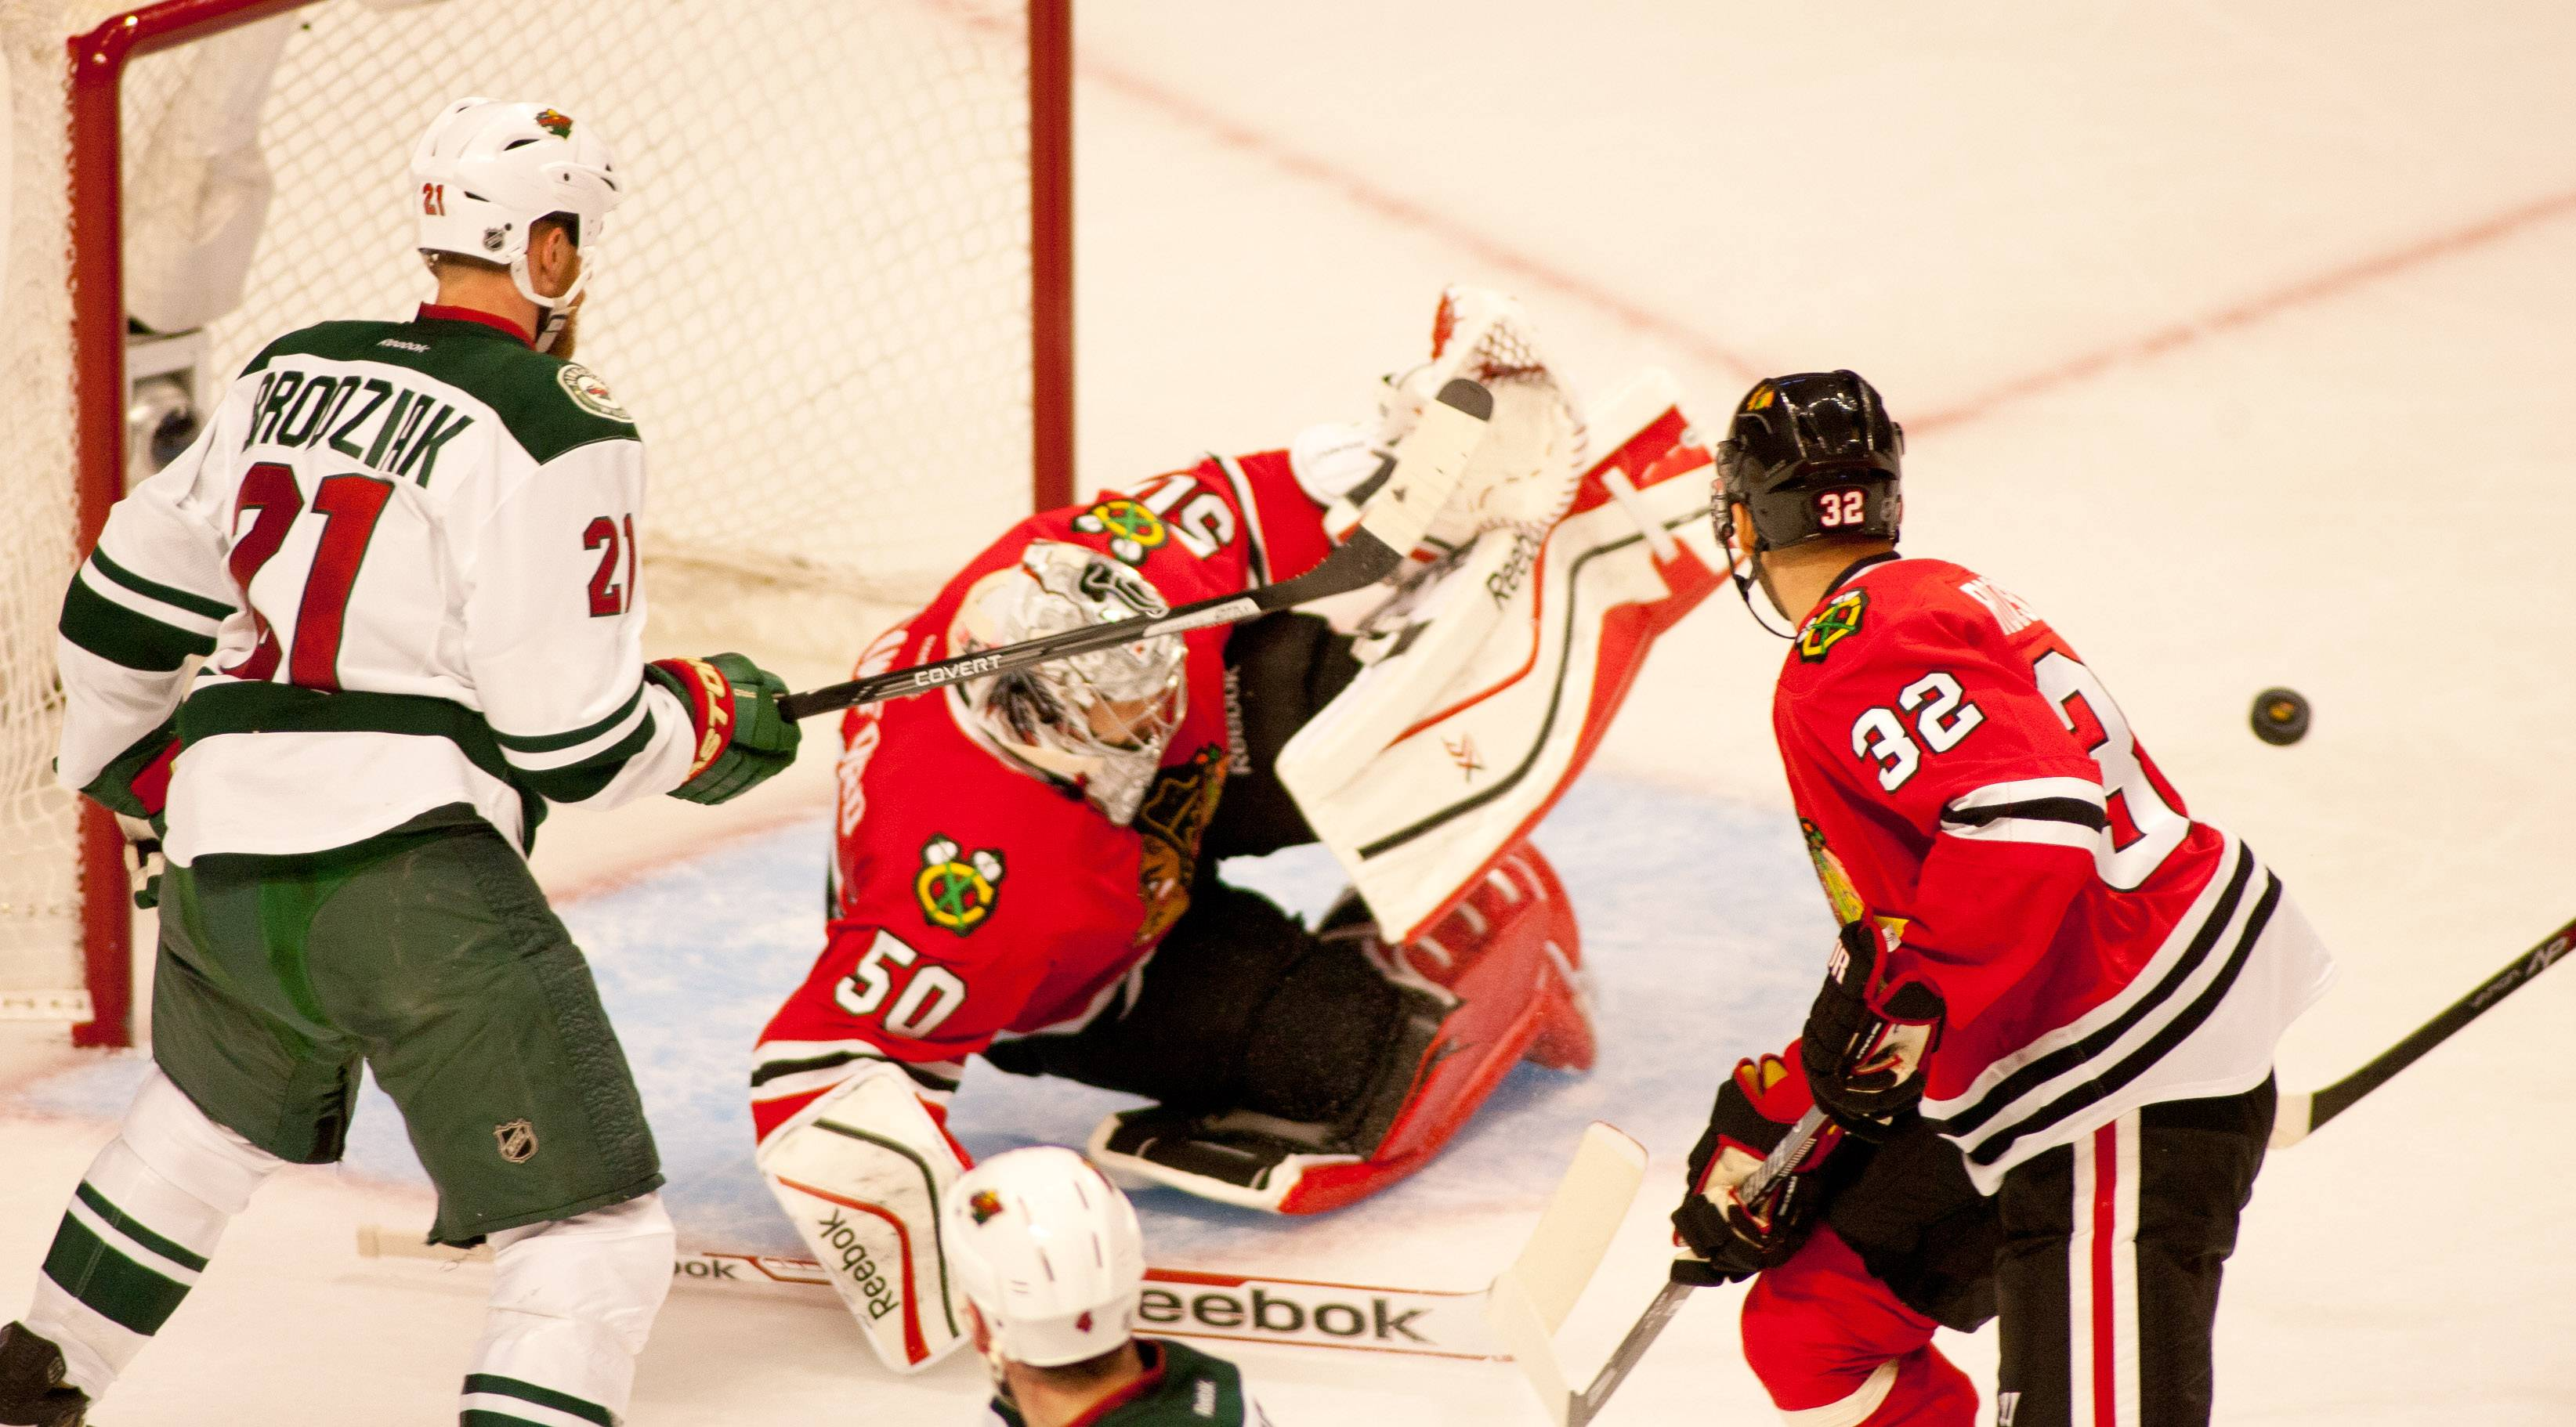 Blackhawks' depth gives them edge over Wild